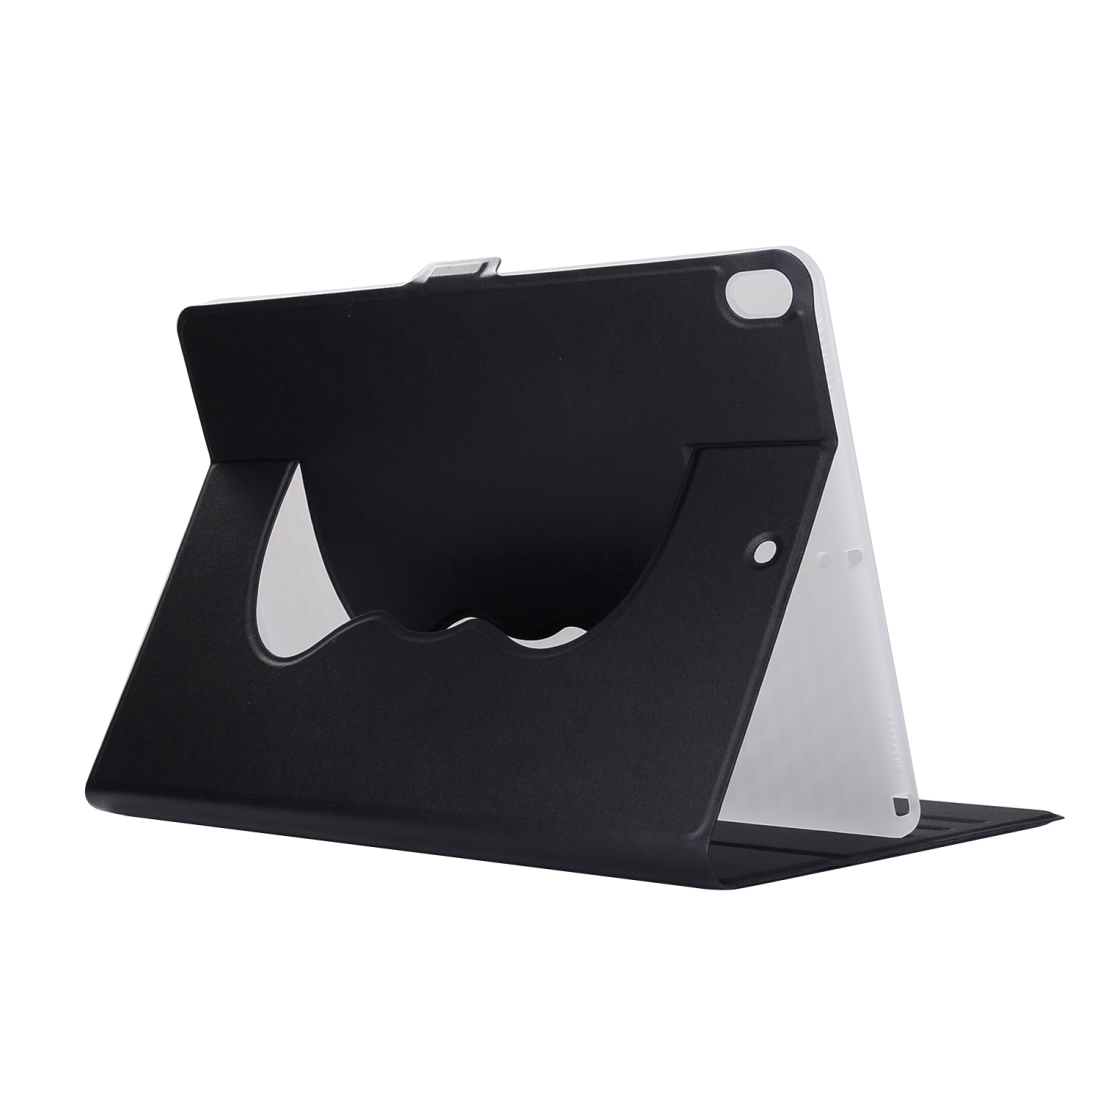 Elastic Force Leather Case with 360 Degrees Rotation Stand For iPad Pro 10.5 inch (Black)